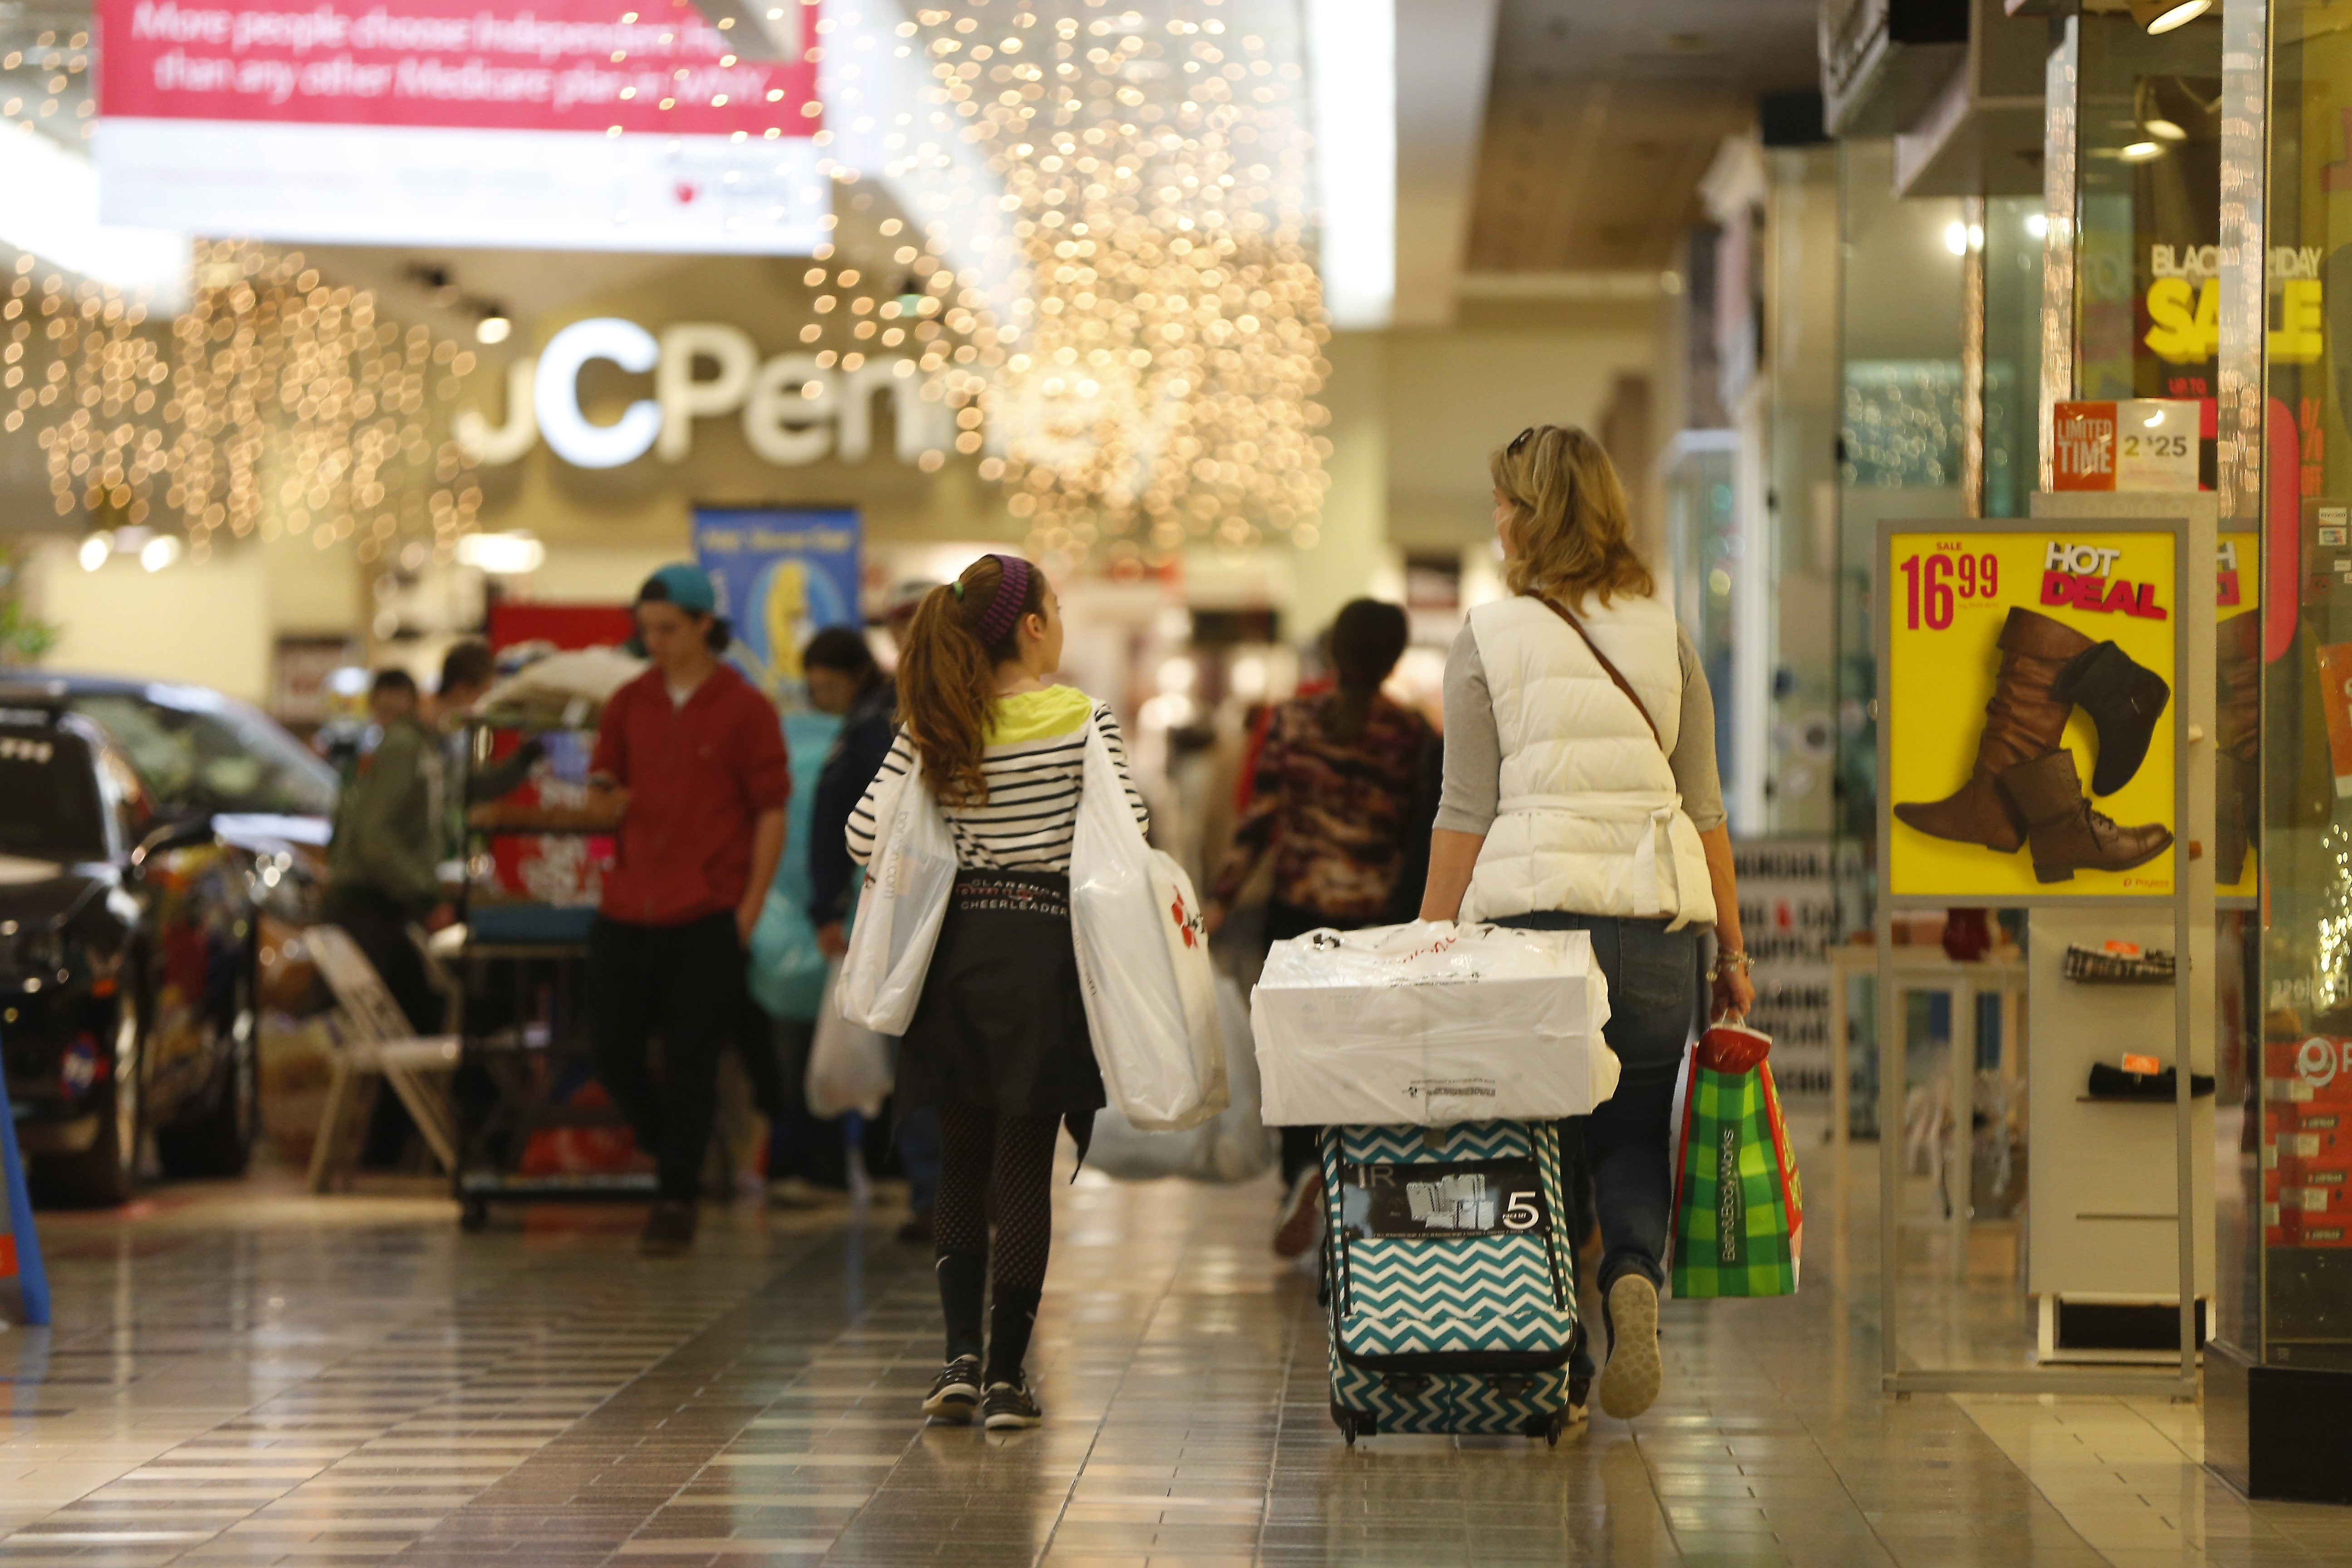 At Eastern Hills Mall, post-holiday transition includes loss of clothier Express and impending closure of anchor Macy's by March.